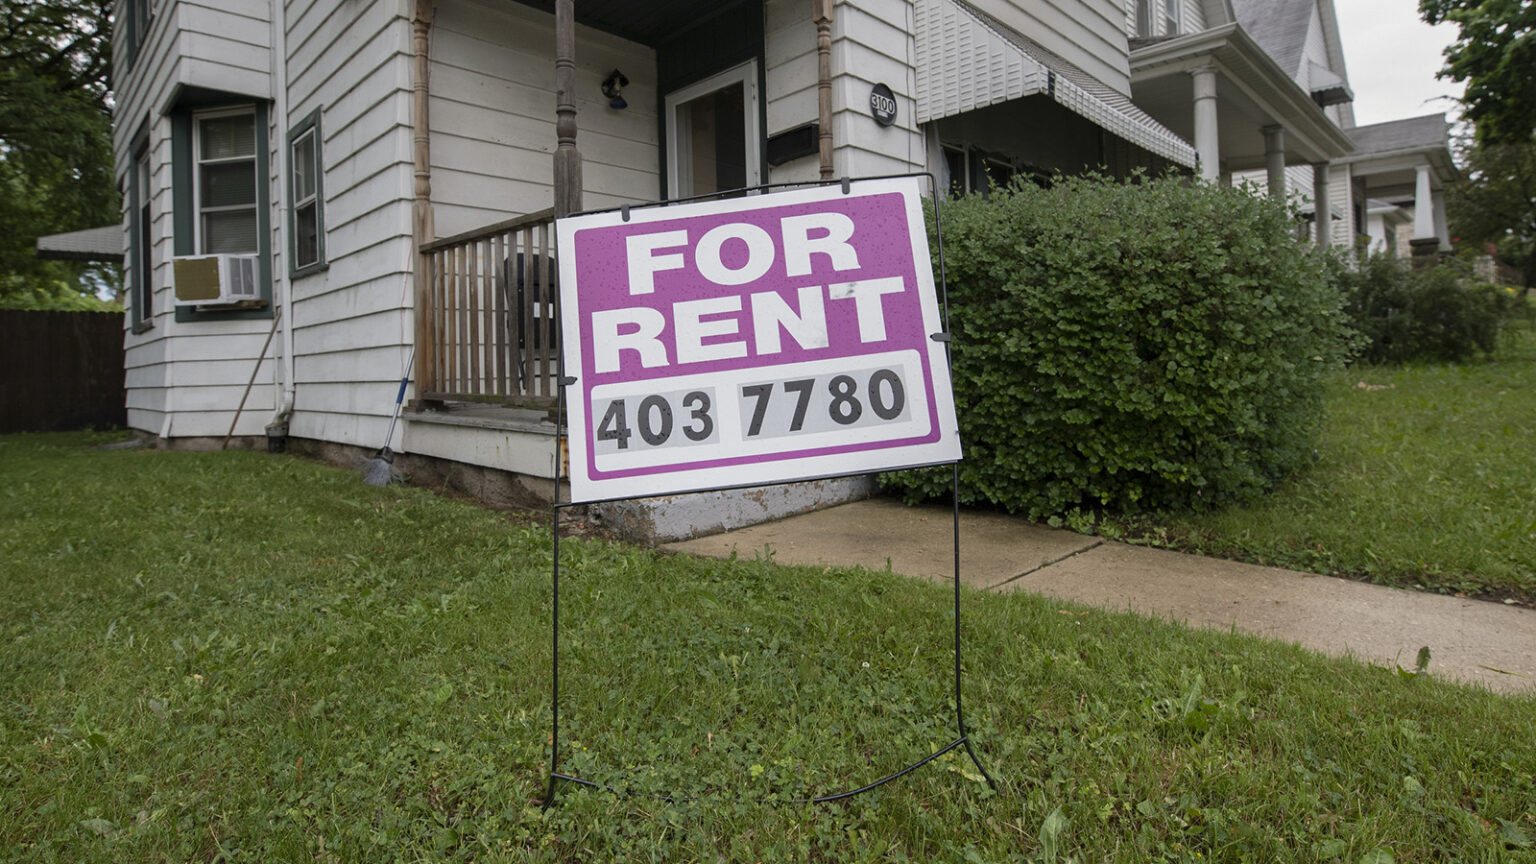 A For Rent sign in front the porch and entrance to a house